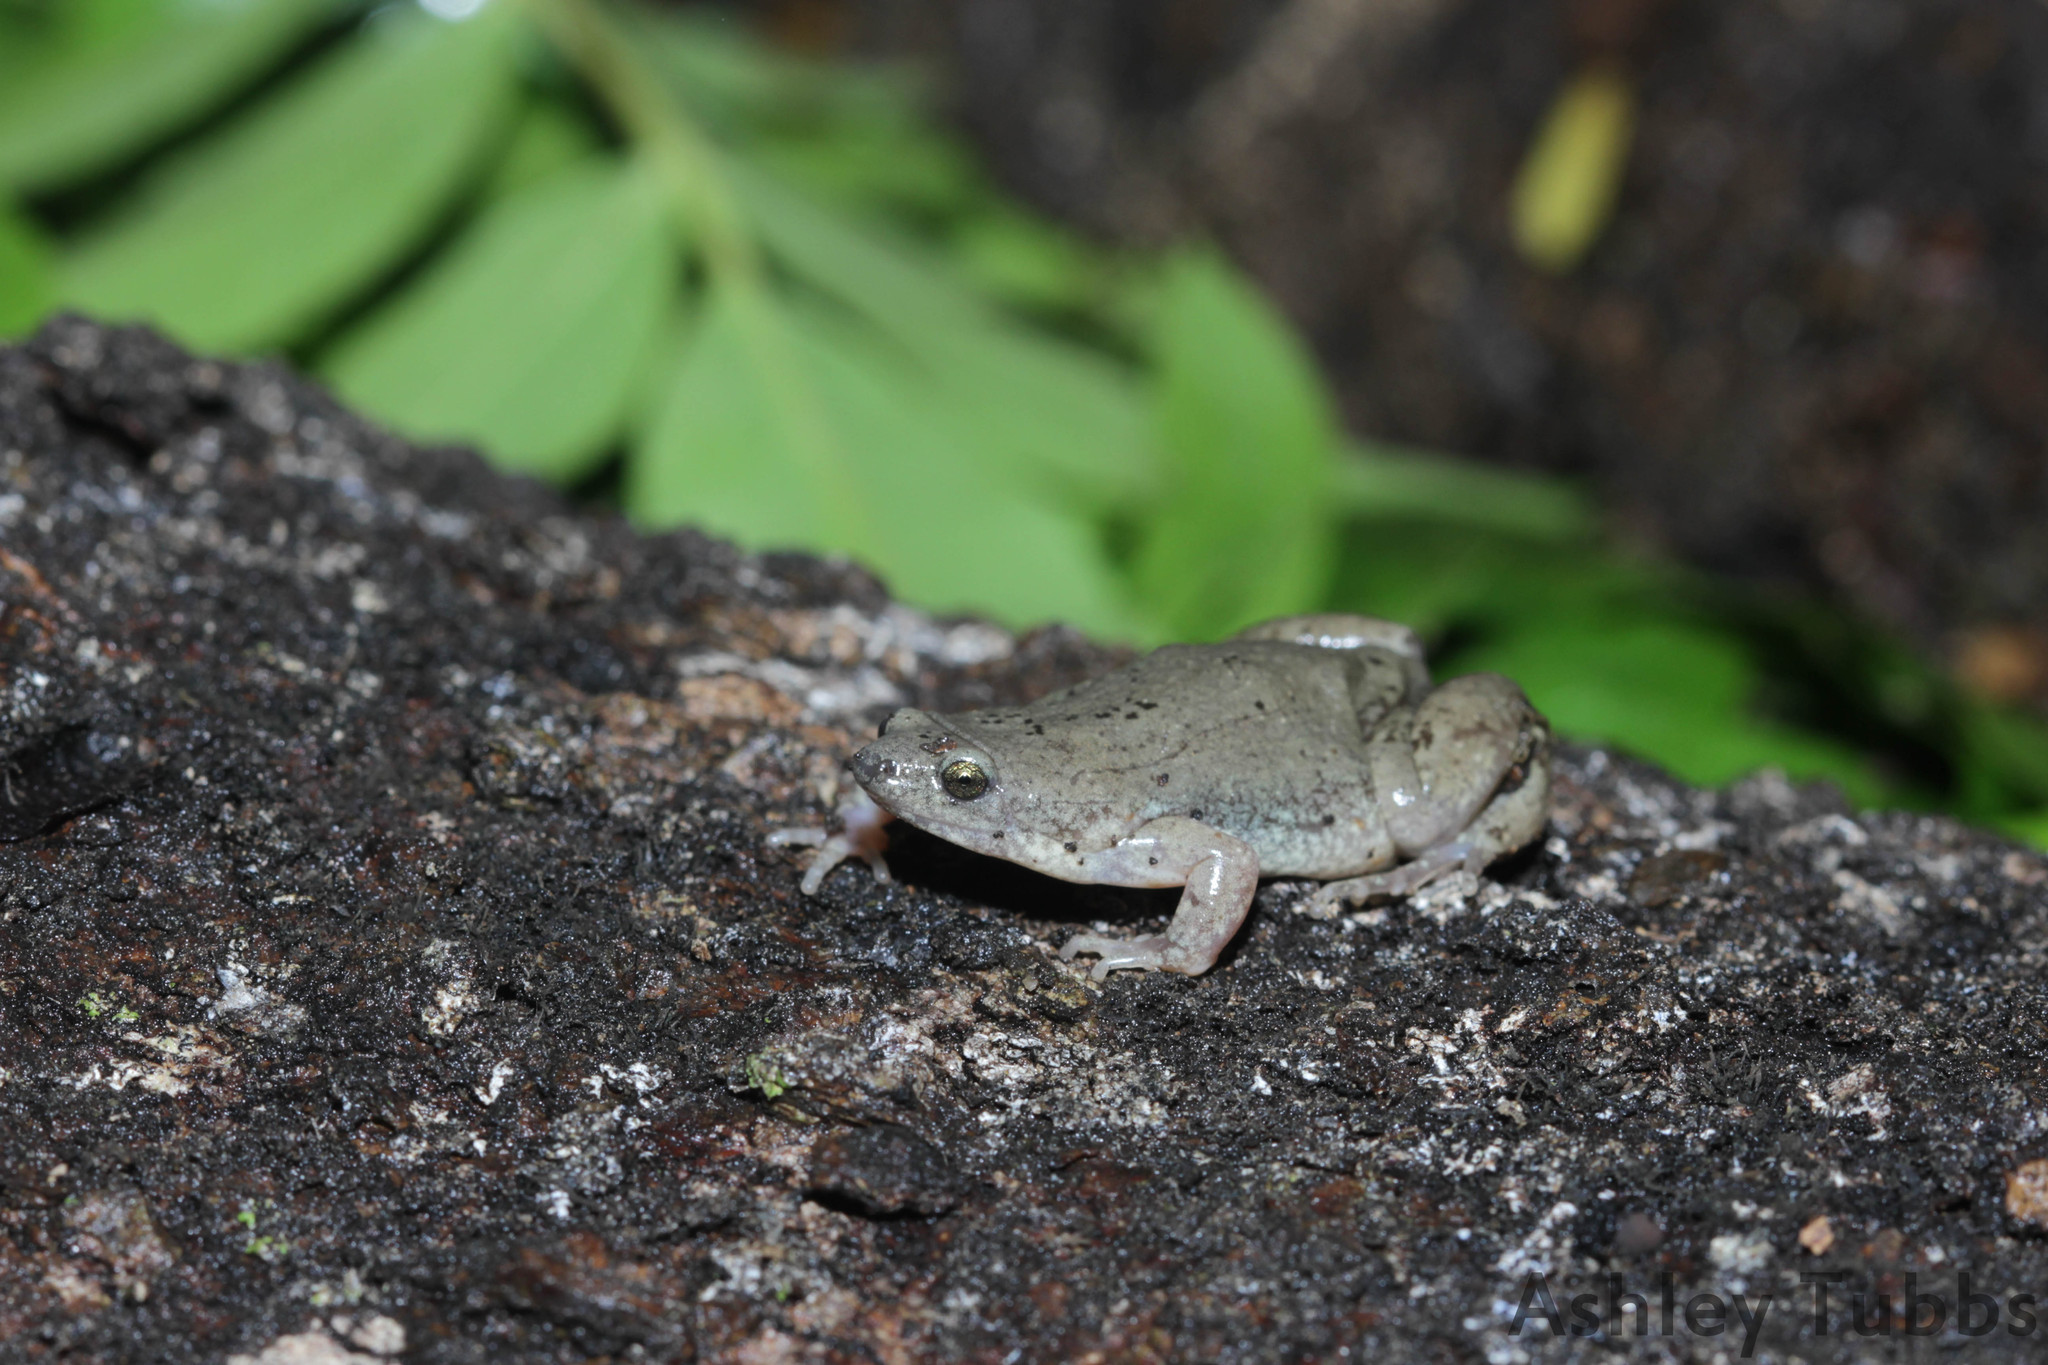 Image of Great Plains Narrowmouth Toad